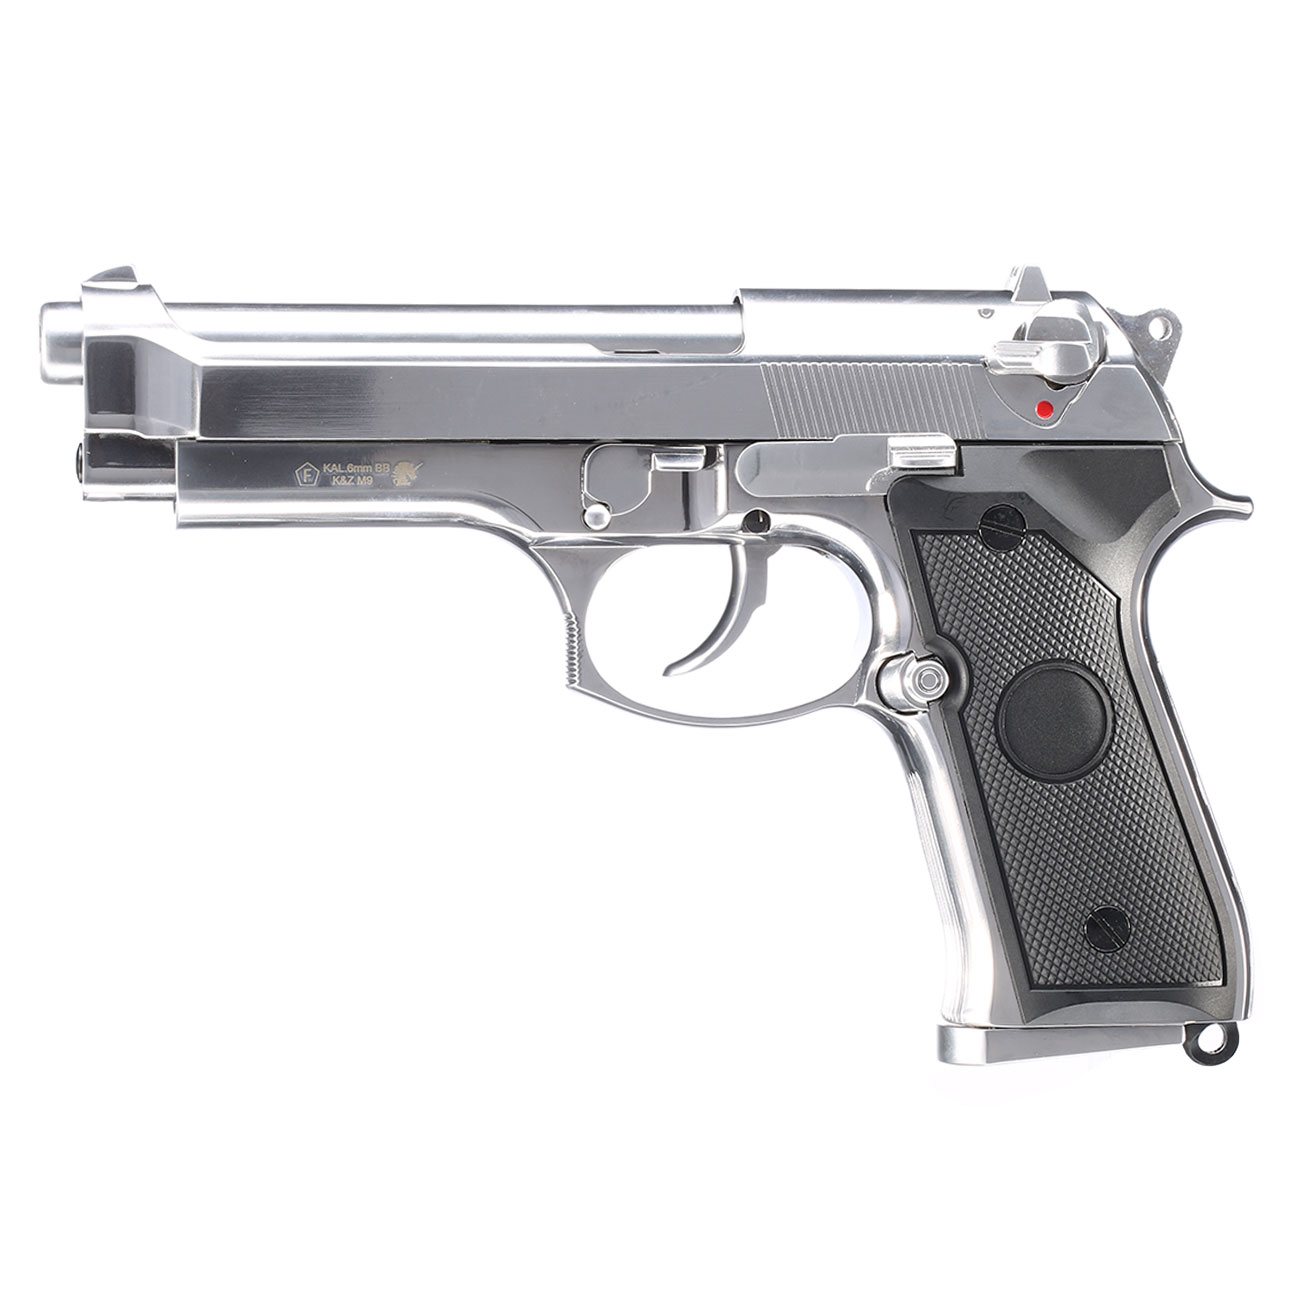 B&W Airsoft M9 Vollmetall GBB 6mm BB chrom 1